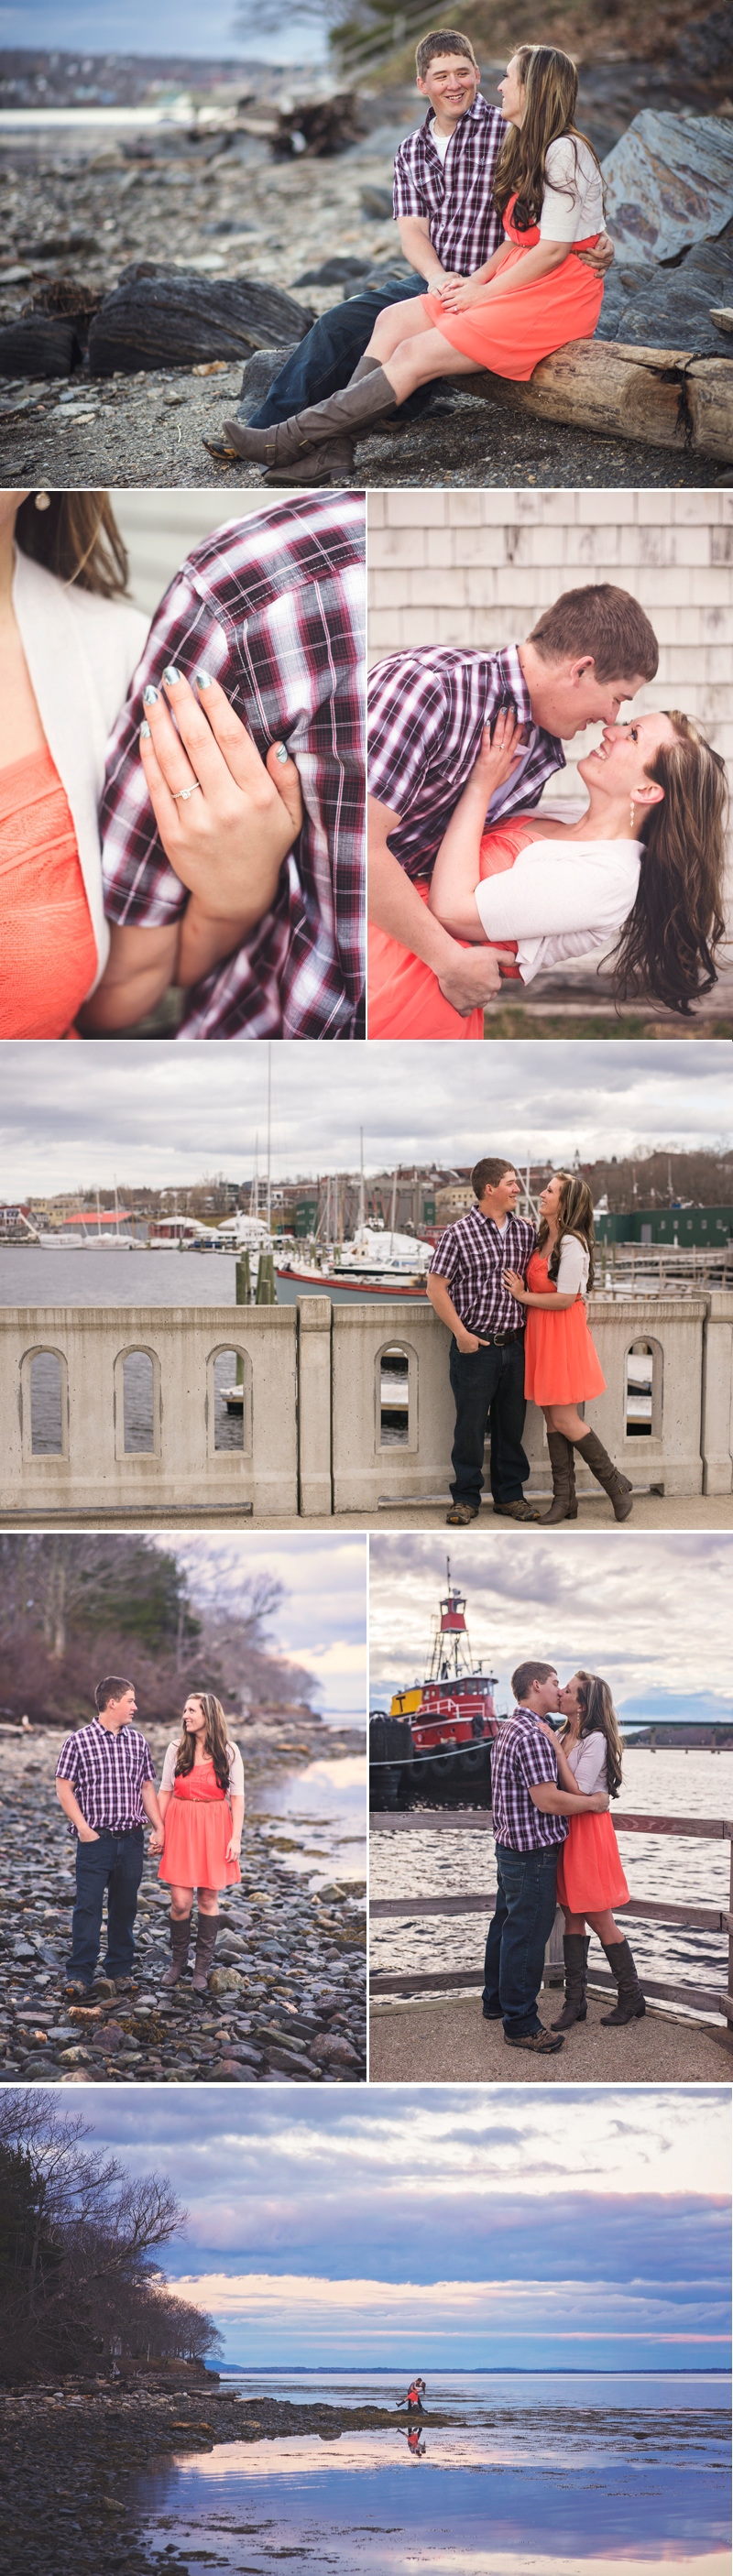 belfast-maine-engagement-2.jpg